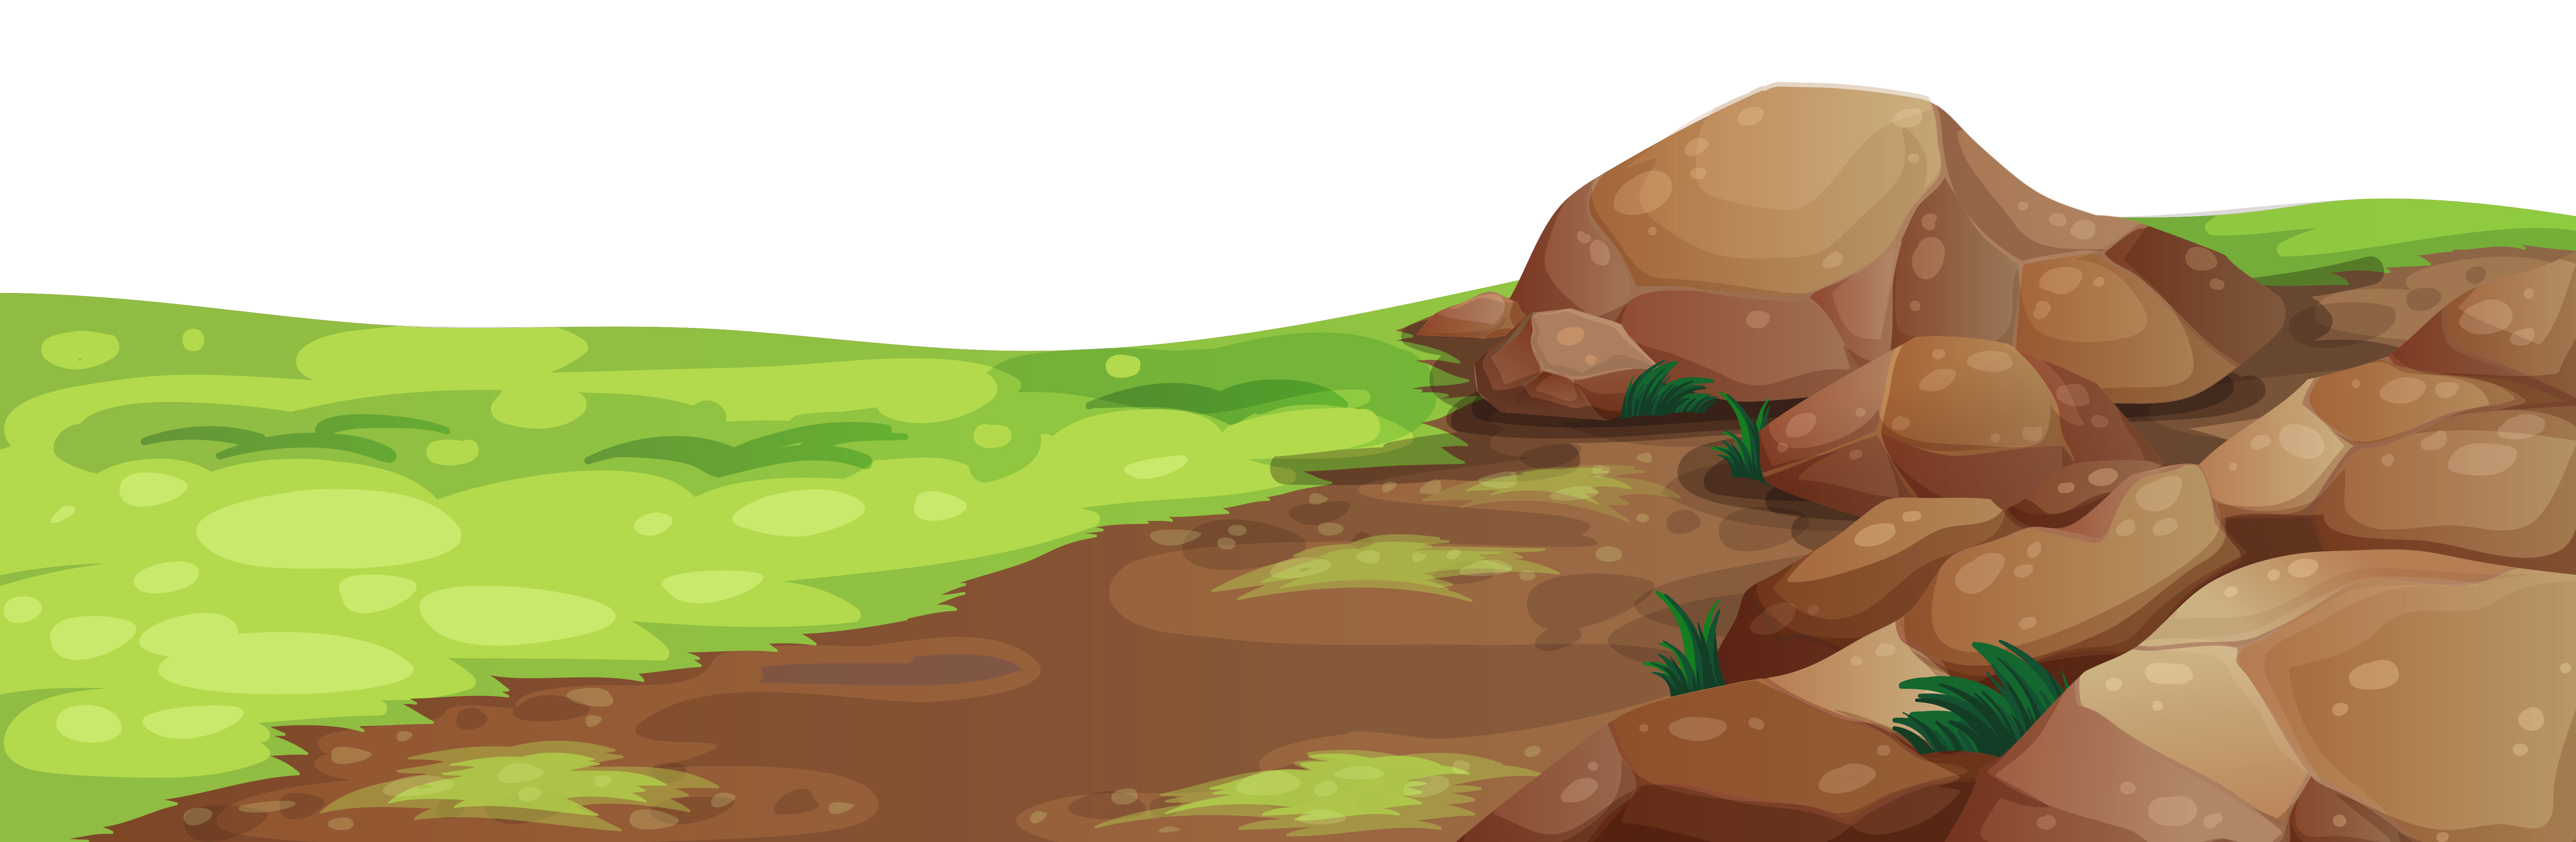 And stones ground png. Clipart grass rock